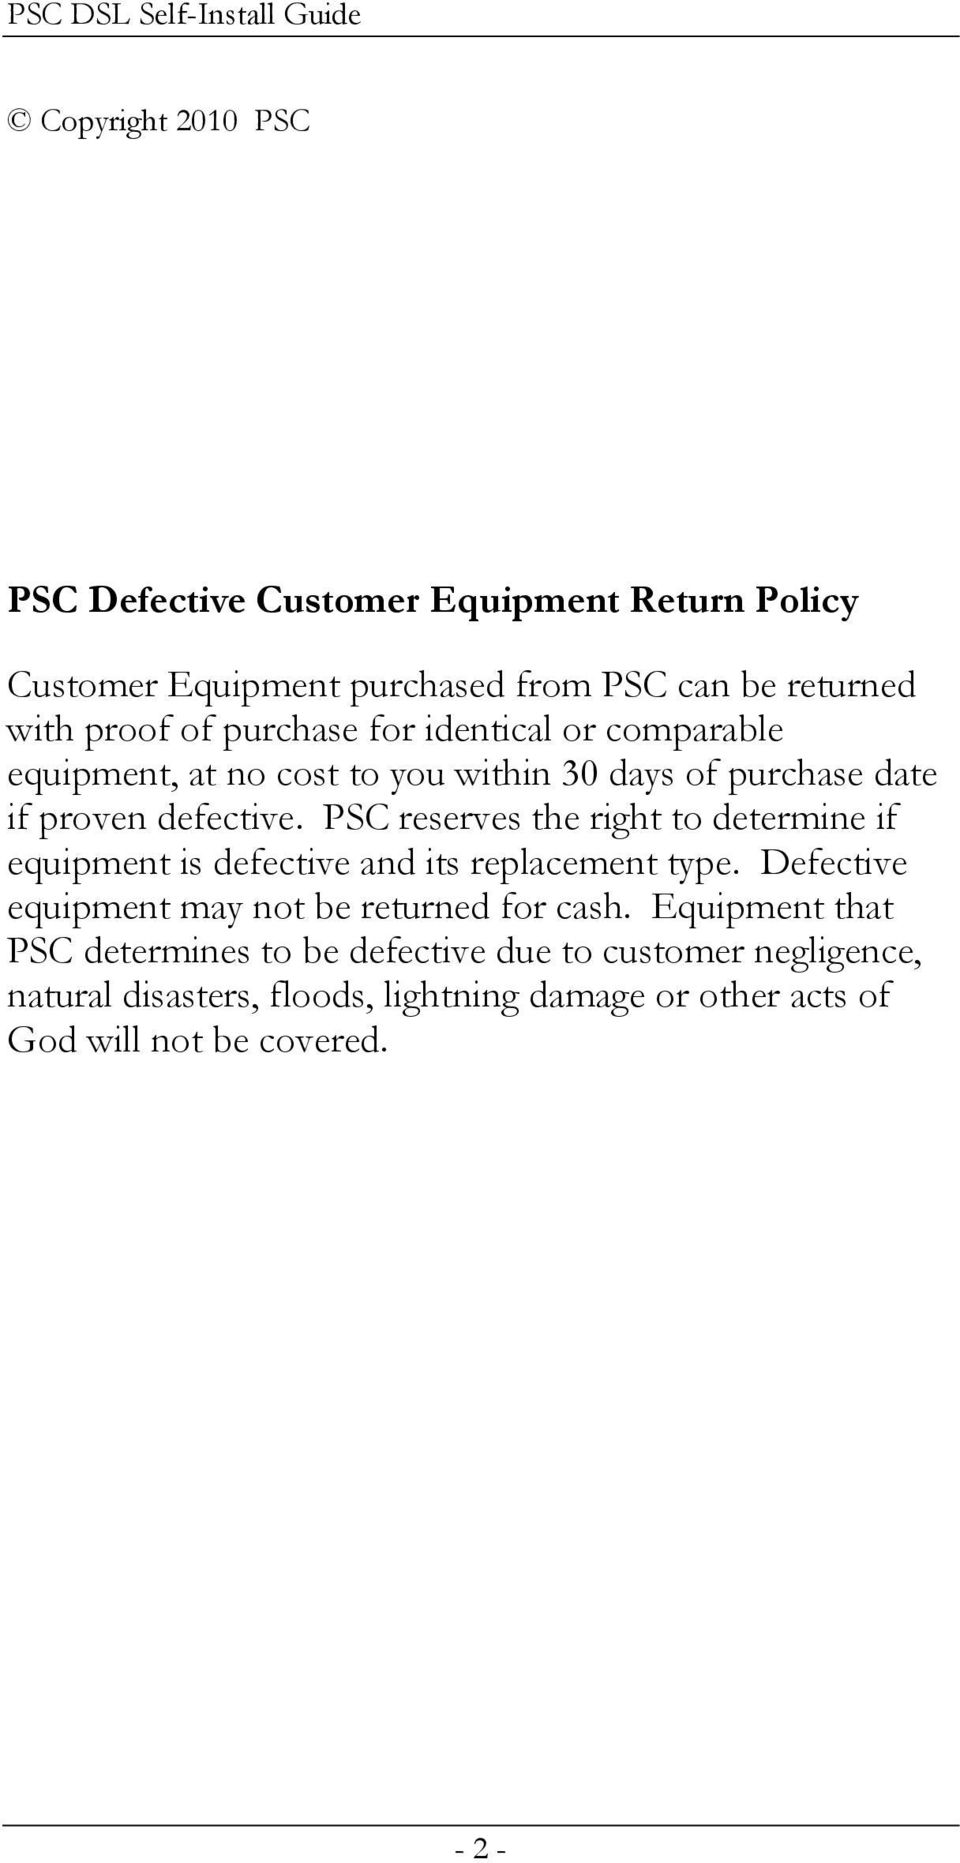 PSC reserves the right to determine if equipment is defective and its replacement type. Defective equipment may not be returned for cash.